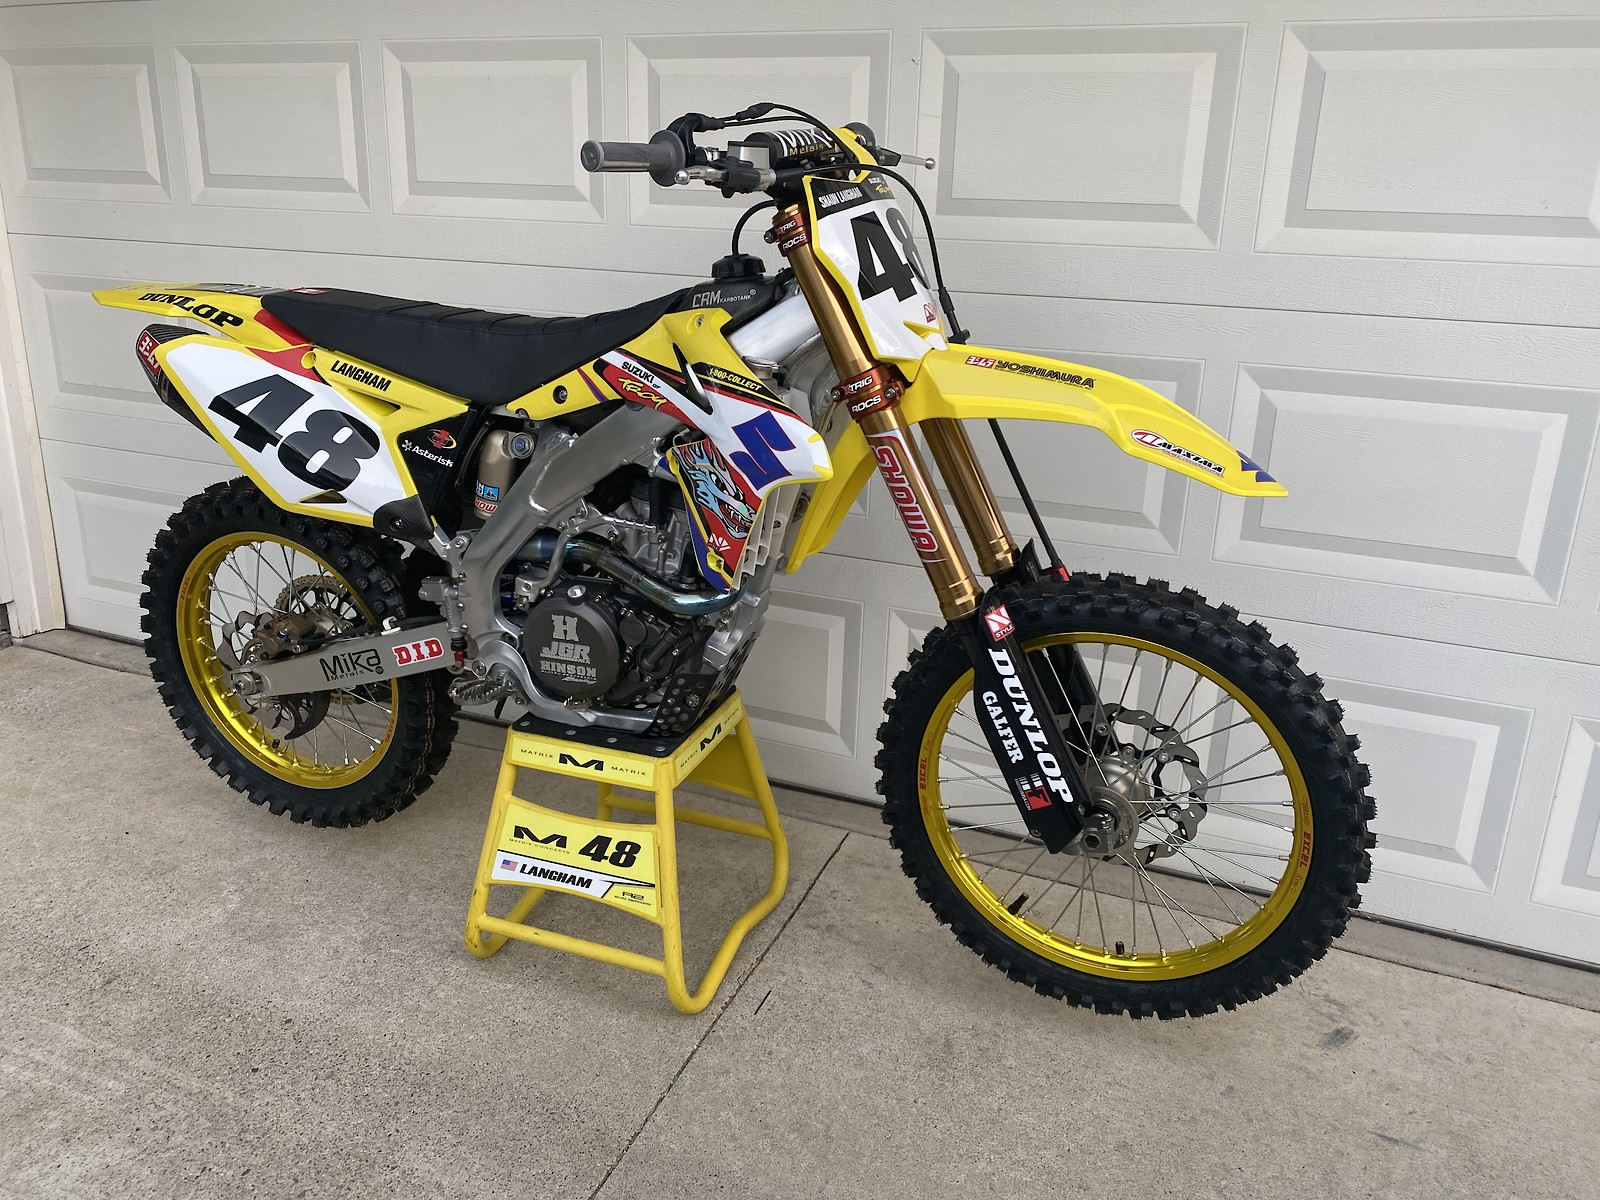 Suzuki of Troy RMZ 450